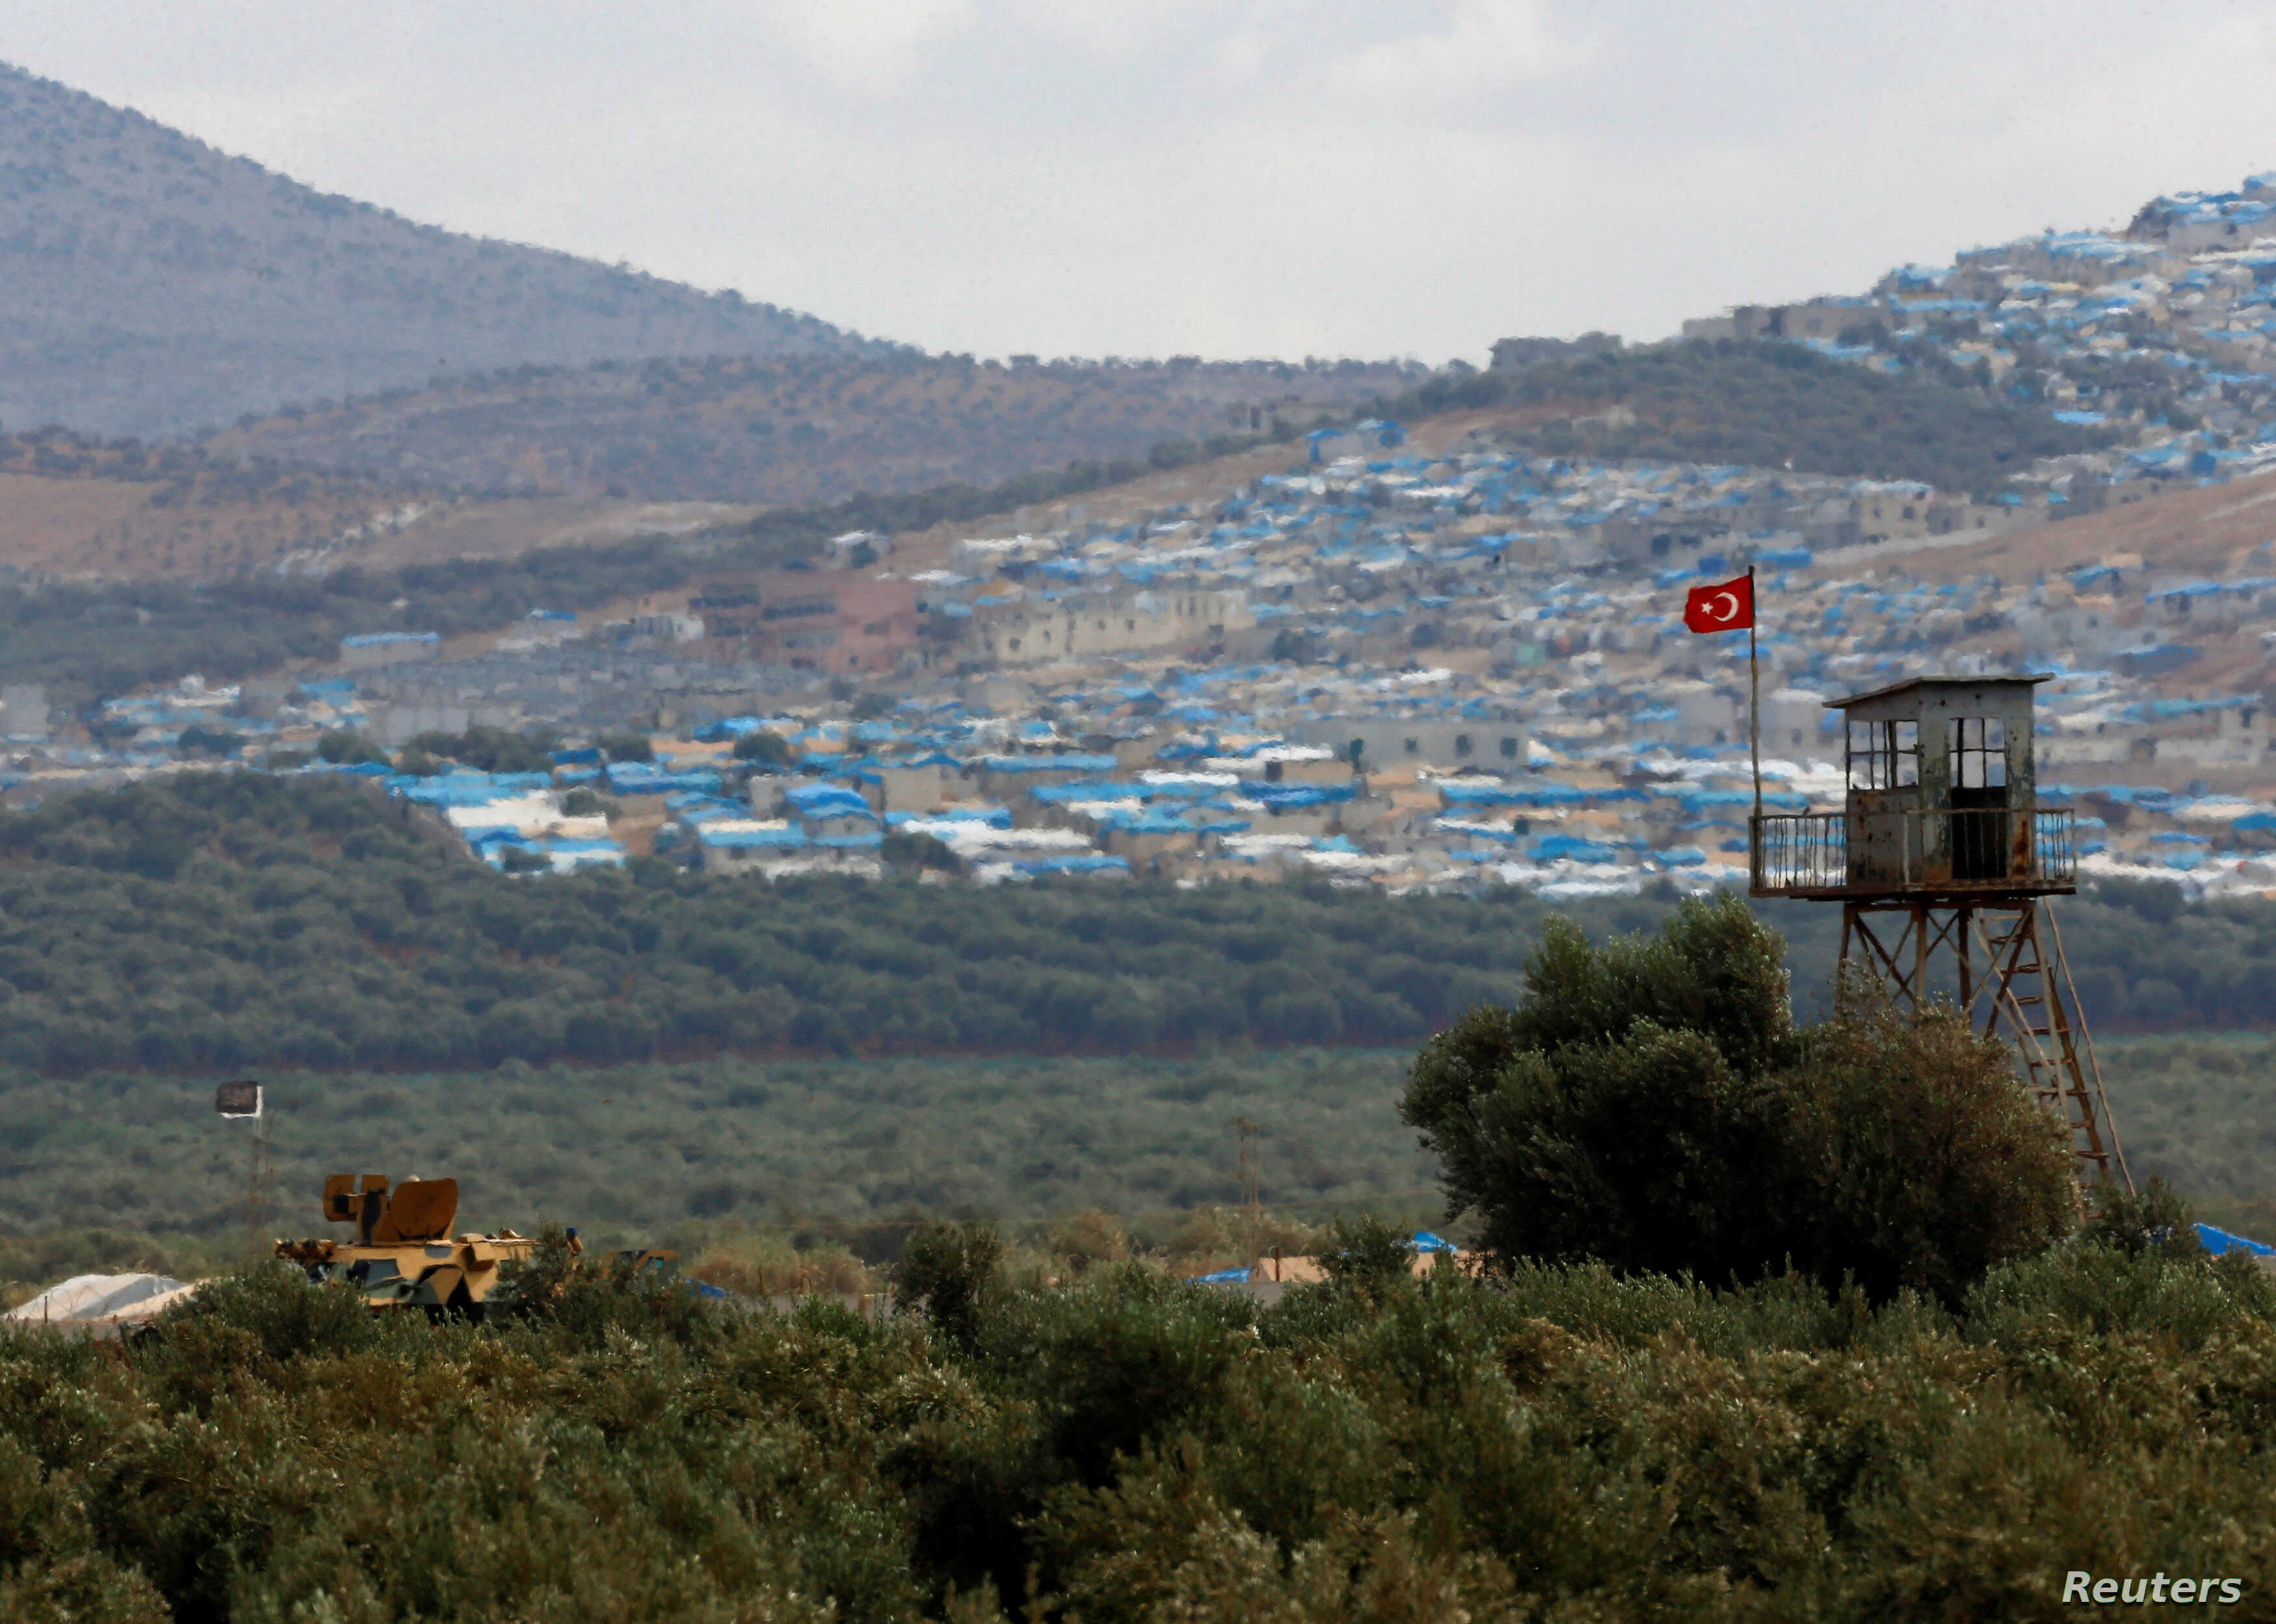 A Turkish military armored vehicle patrols on the border line located opposite the Syrian town of Atimah, Idlib province, in this picture taken from Reyhanli, Hatay province, Turkey Oct. 10, 2017.